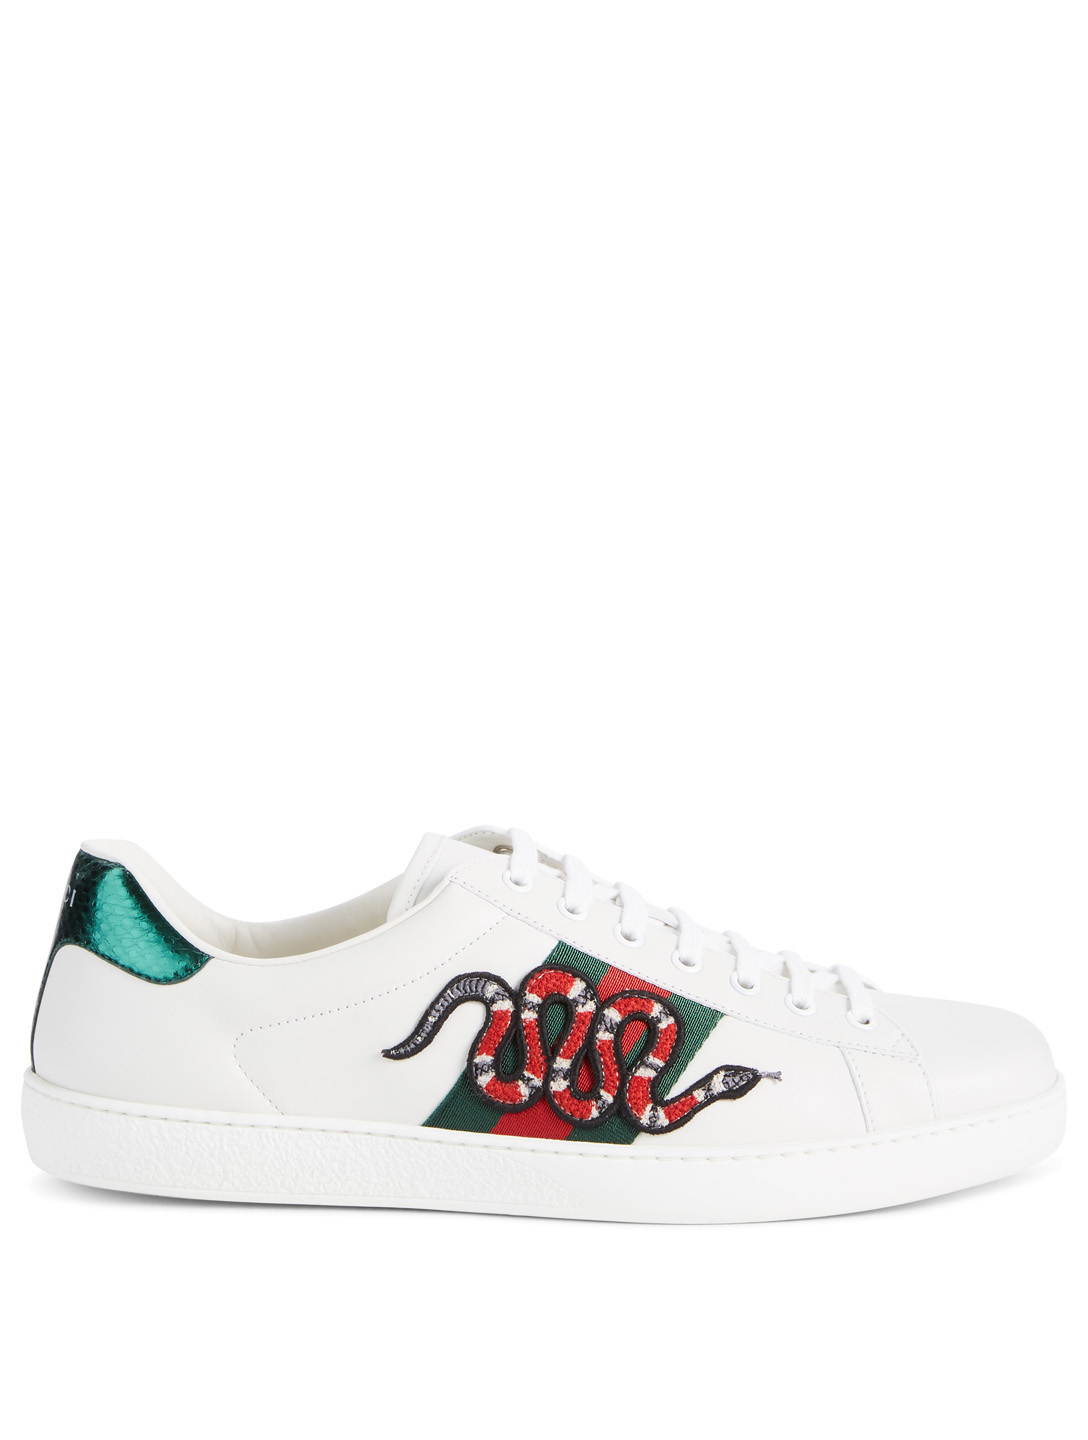 be8edad2287 GUCCI New Ace Leather Sneakers With Snake Embroidery